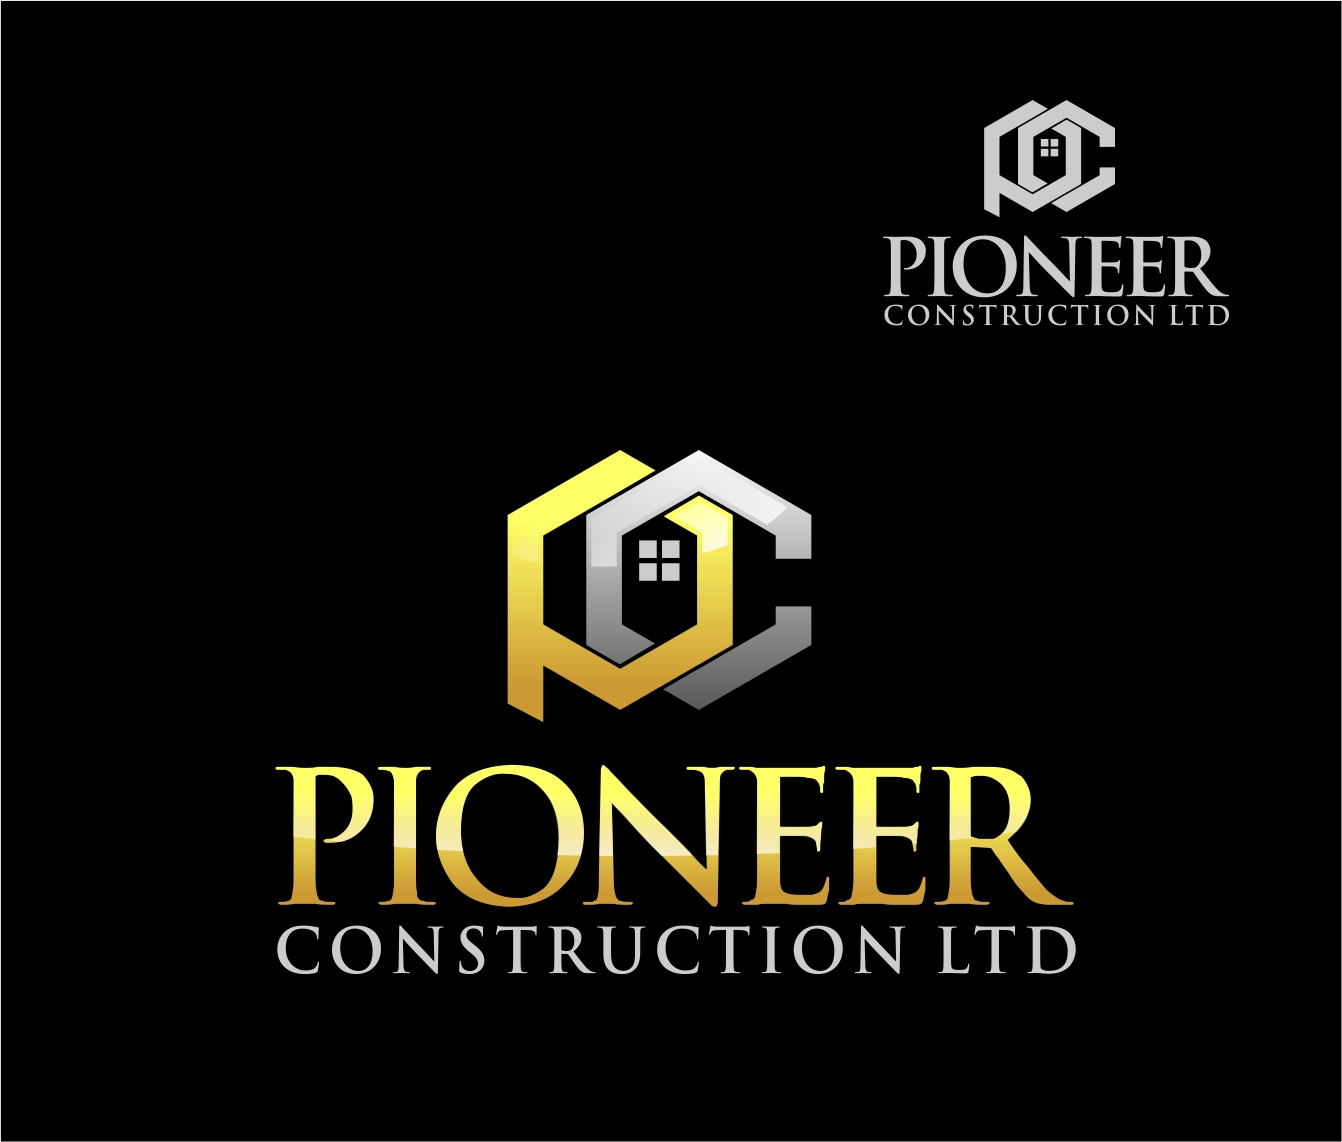 Logo Design by Reivan Ferdinan - Entry No. 37 in the Logo Design Contest Imaginative Logo Design for  Pioneer Construction Ltd.